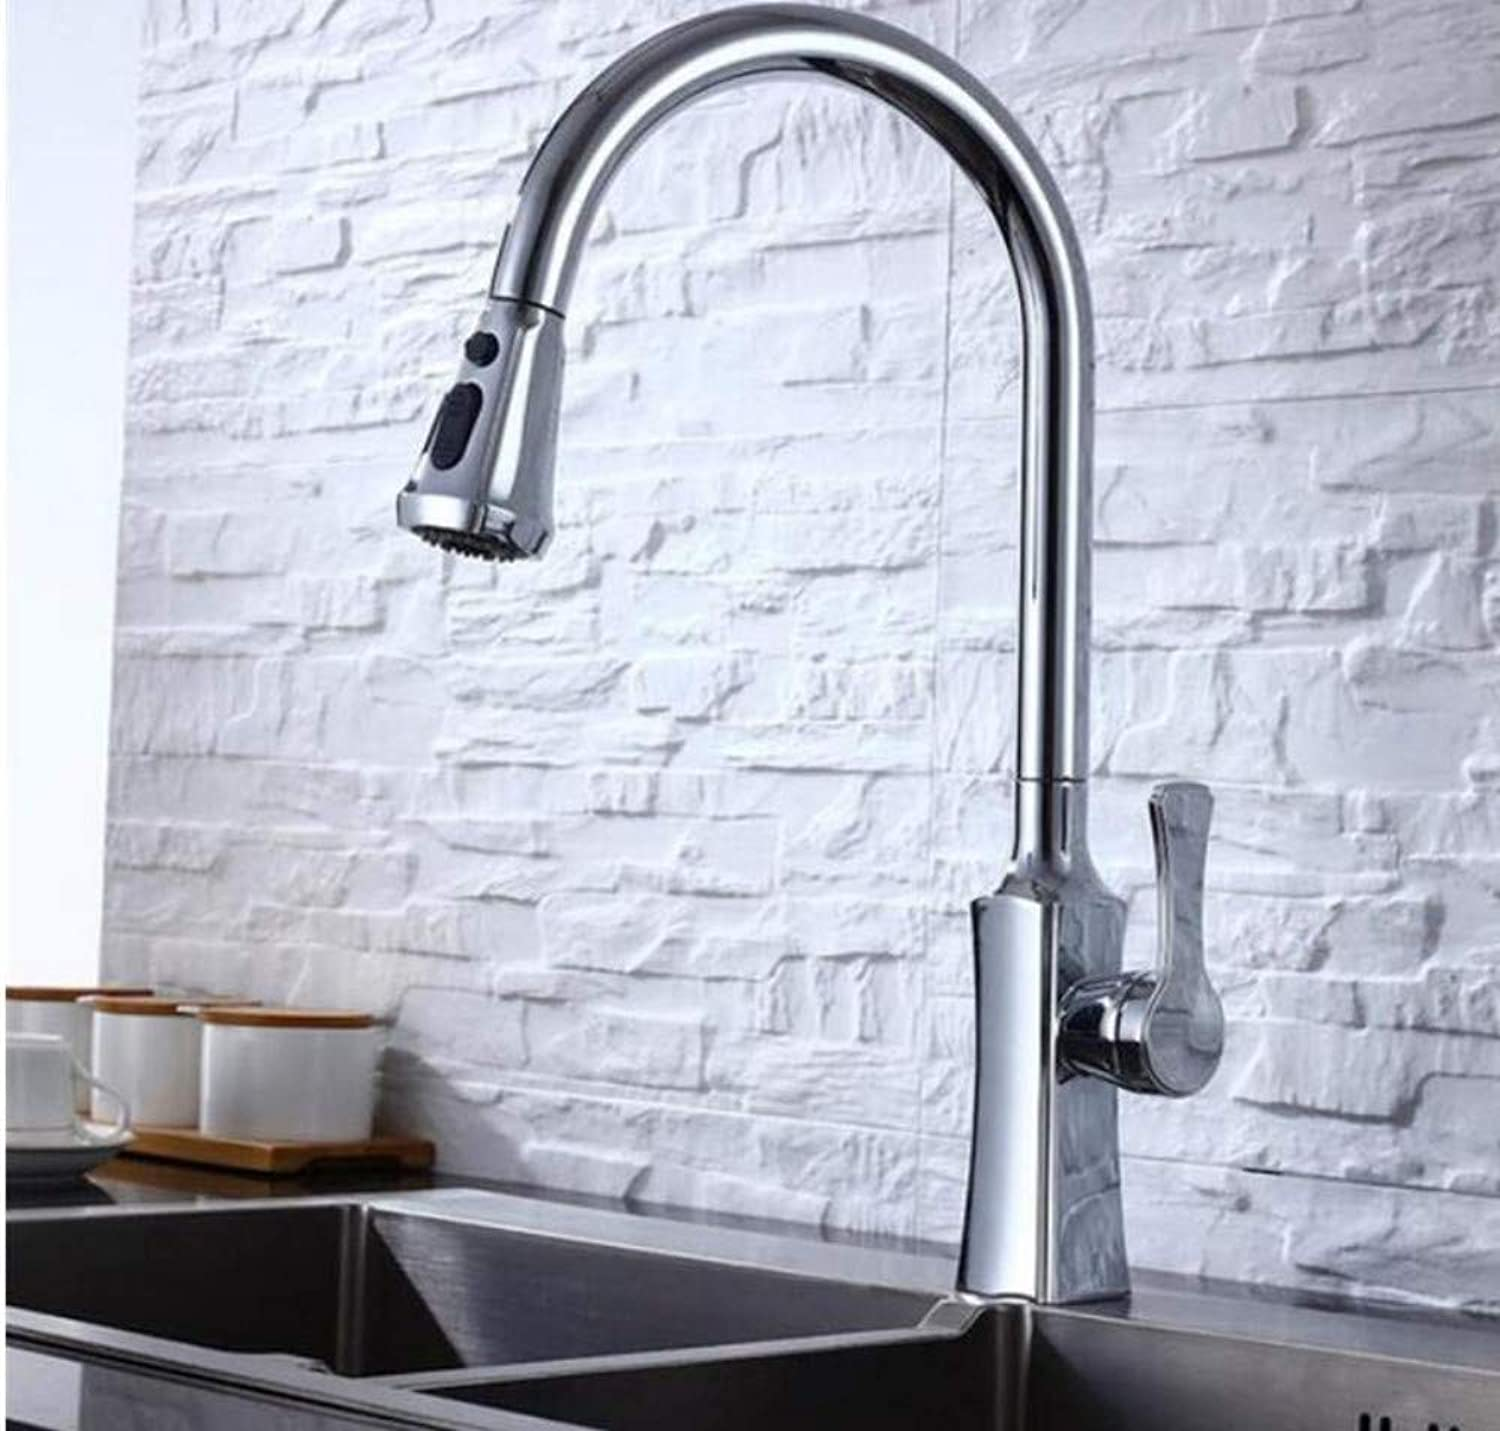 Brass Wall Faucet Chrome Brass Faucetcolors Choice Single Hole Kitchen Sink Water Tap Waretap